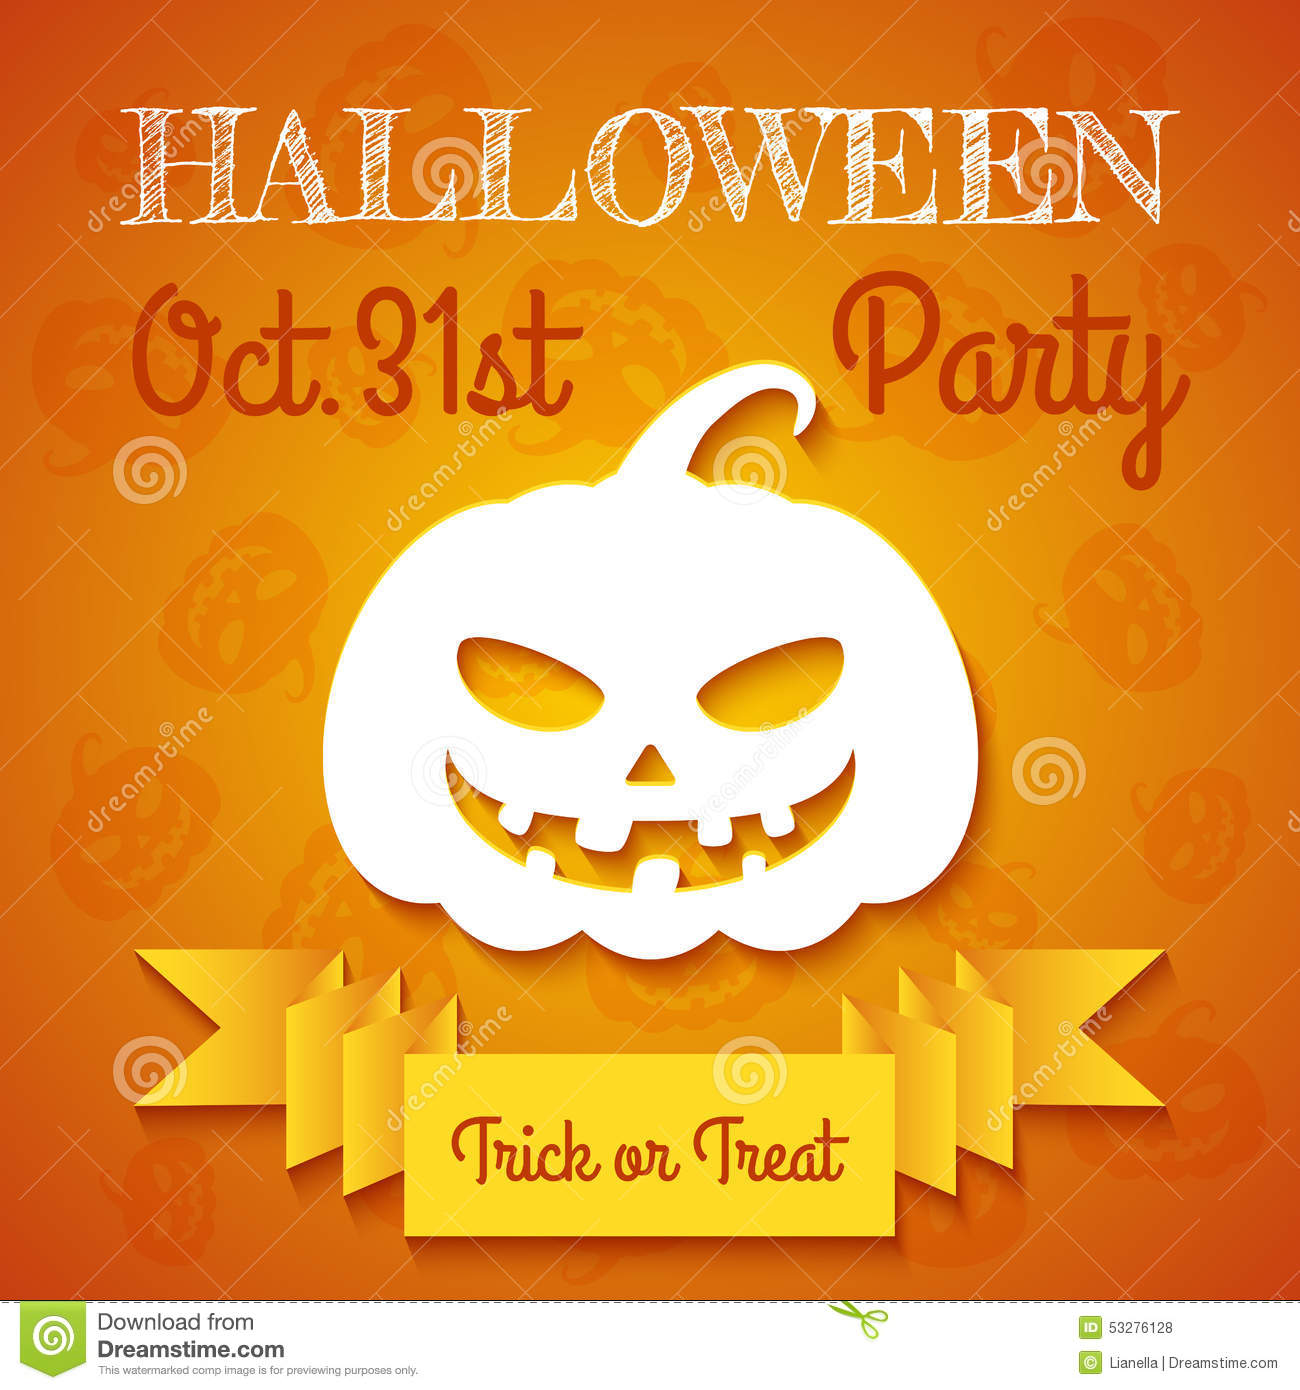 Halloween Party Flyer Template Stock Vector - Image: 53276128